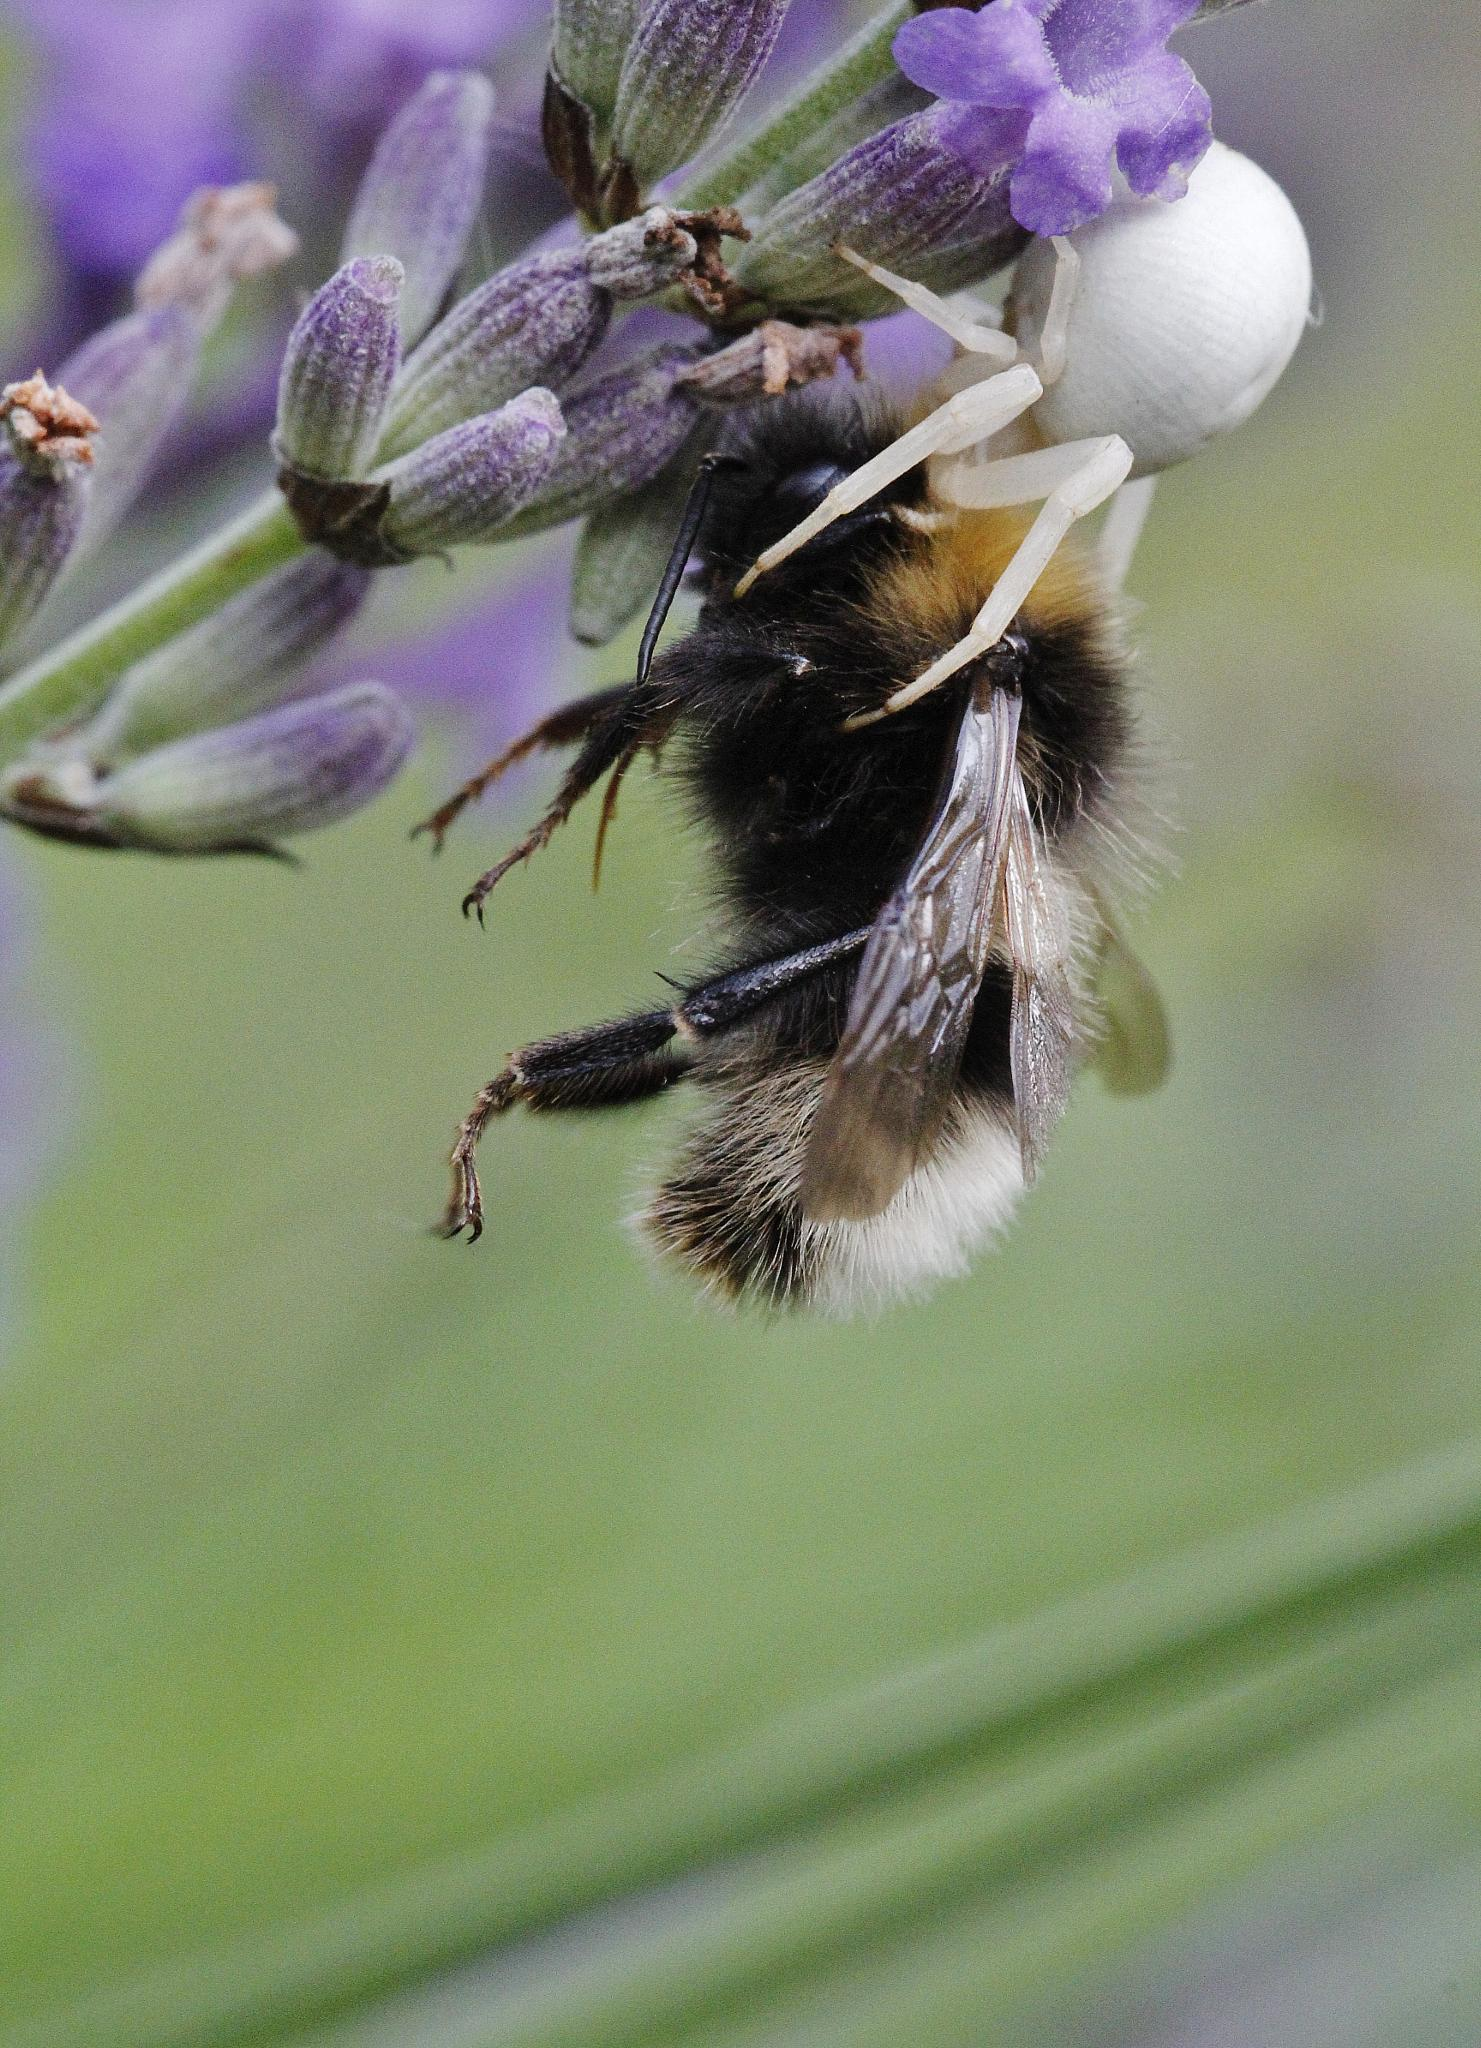 Bumble bee killed by a white spider by Janina Östling